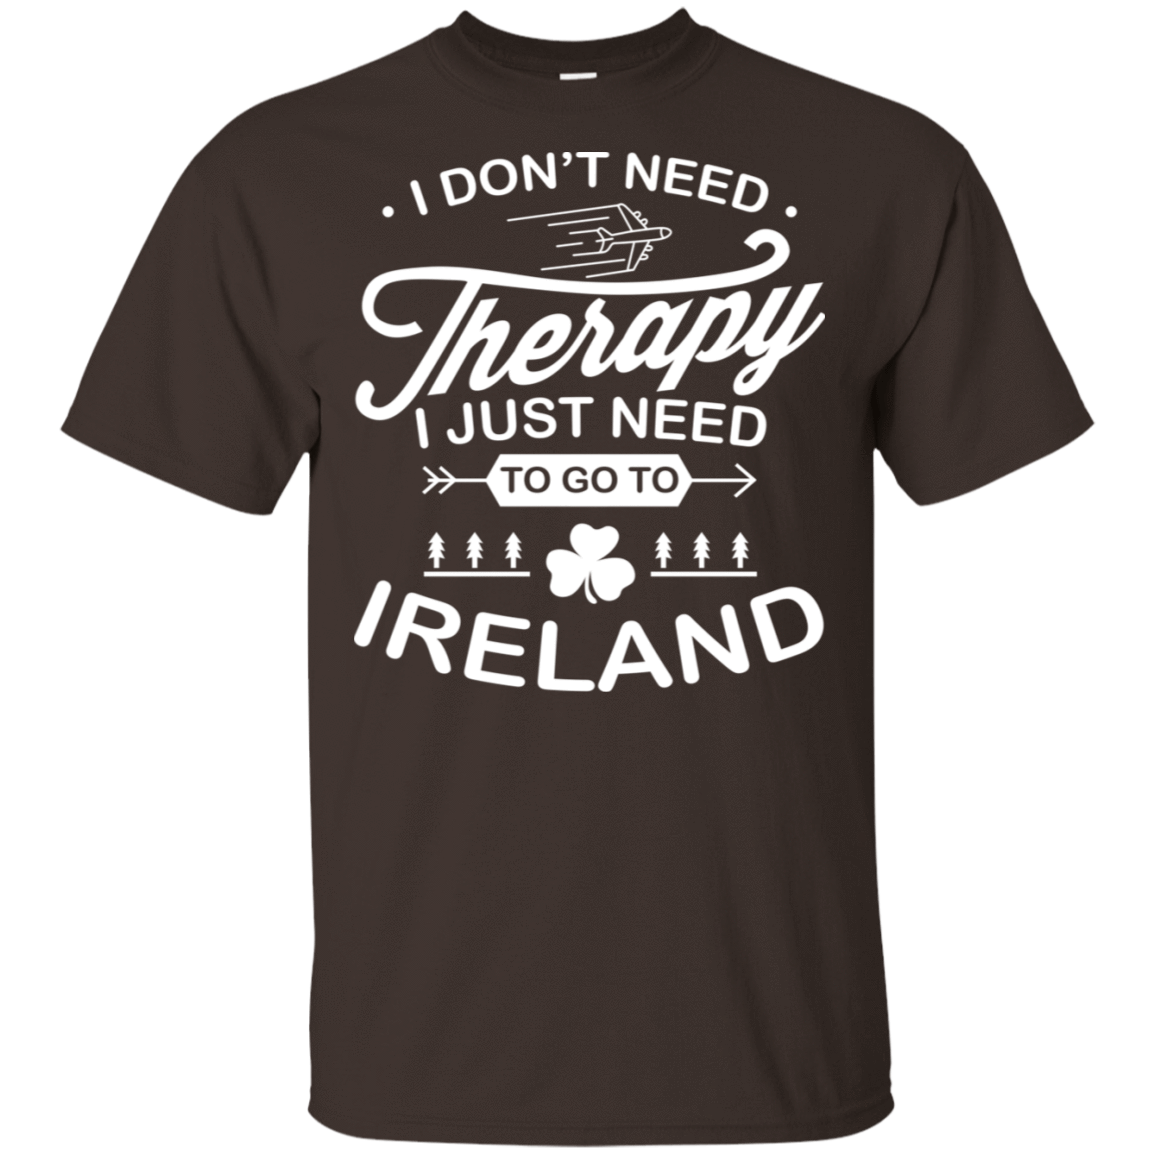 I Don't Need Therapy I Just Need To Go To Ireland 22-2283-73423298-12087 - Tee Ript